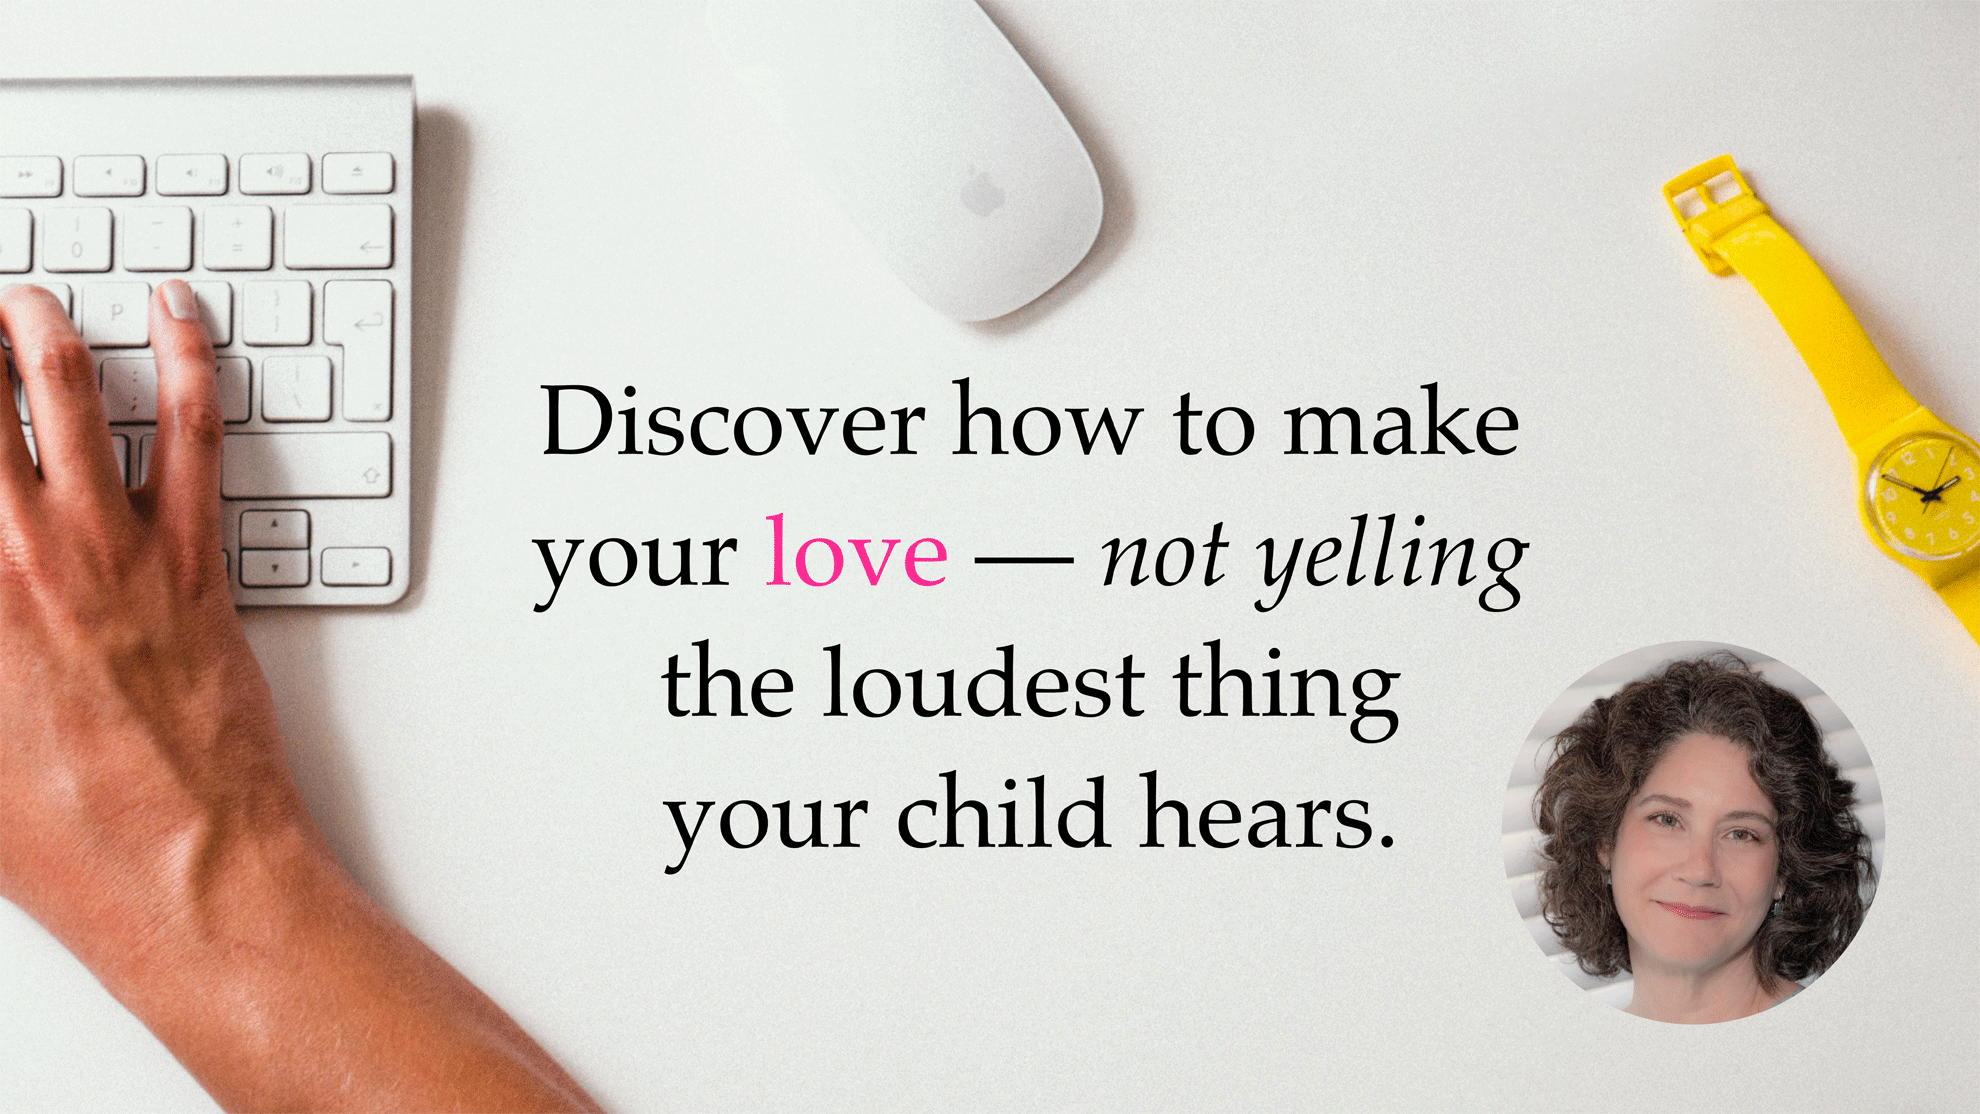 Discover how to make your love - not yelling the loudest thing your child hears